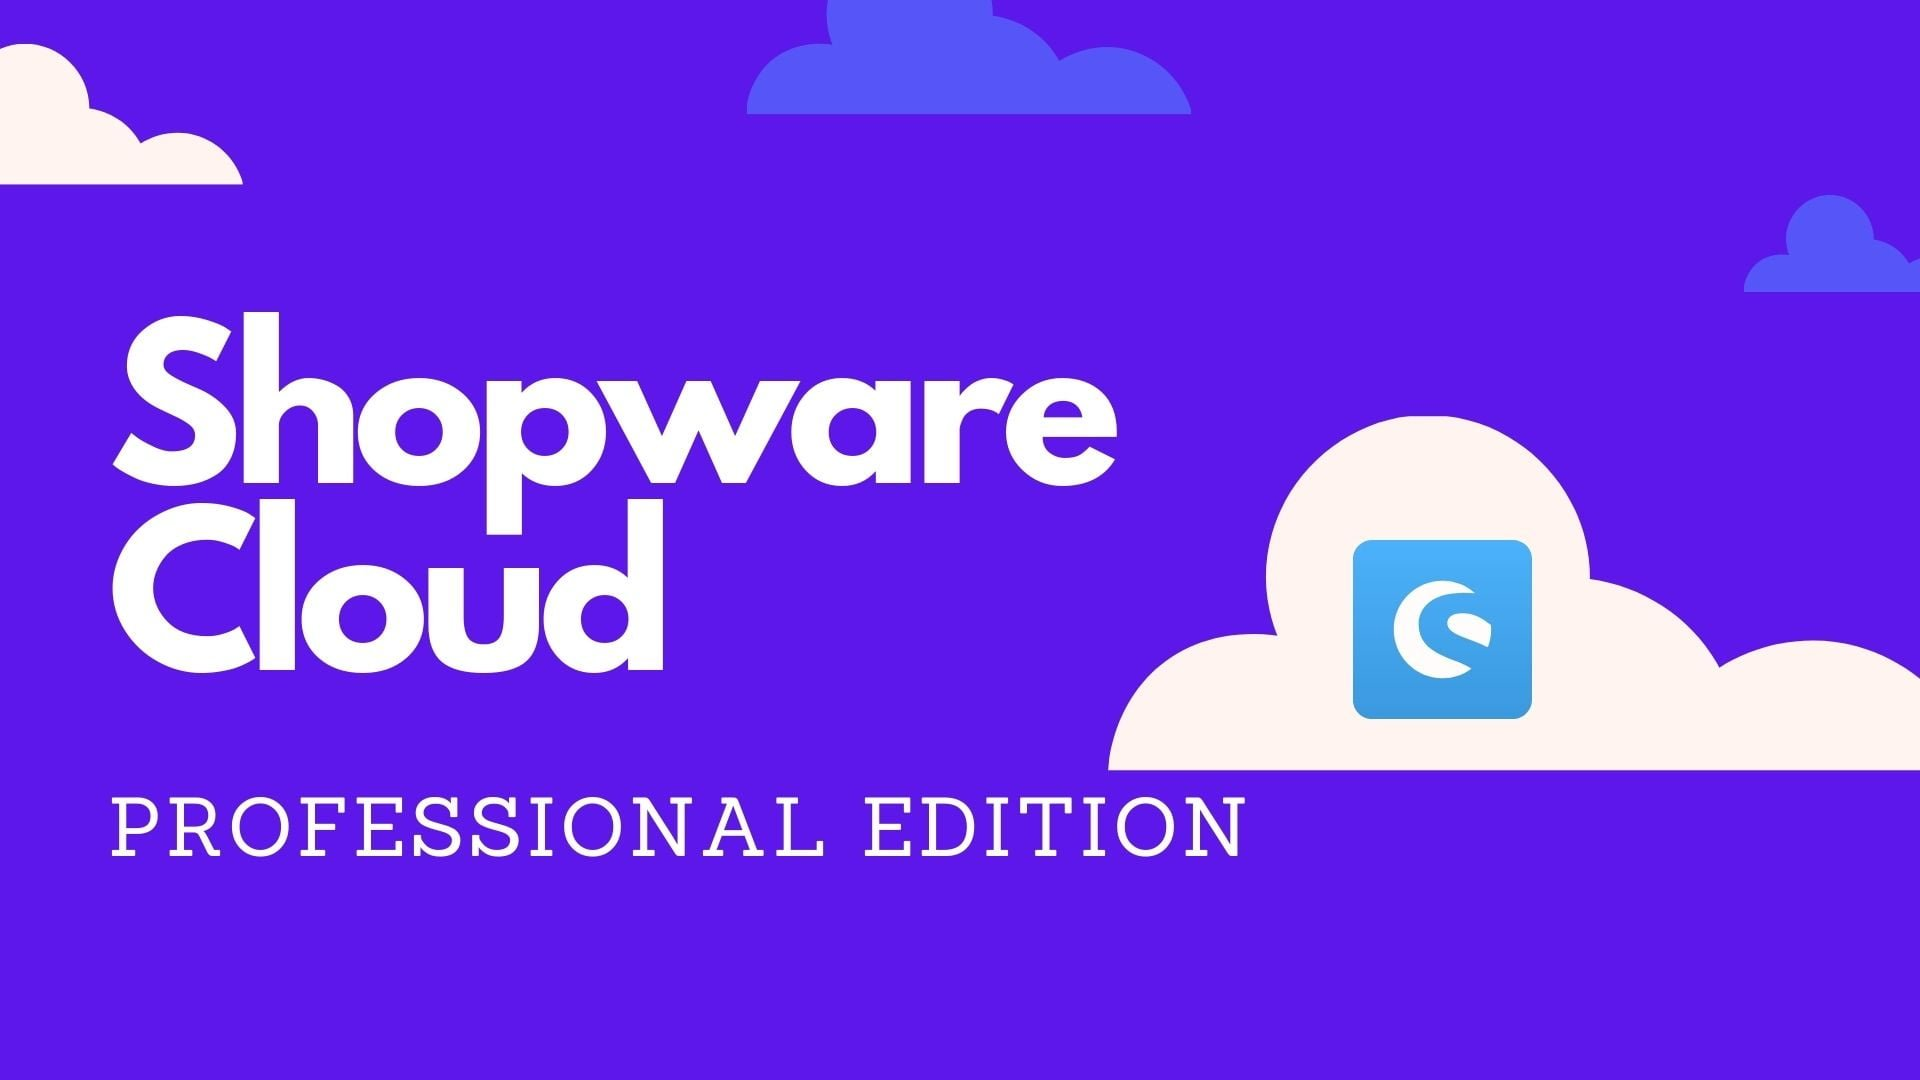 Shopware cloud professional edition